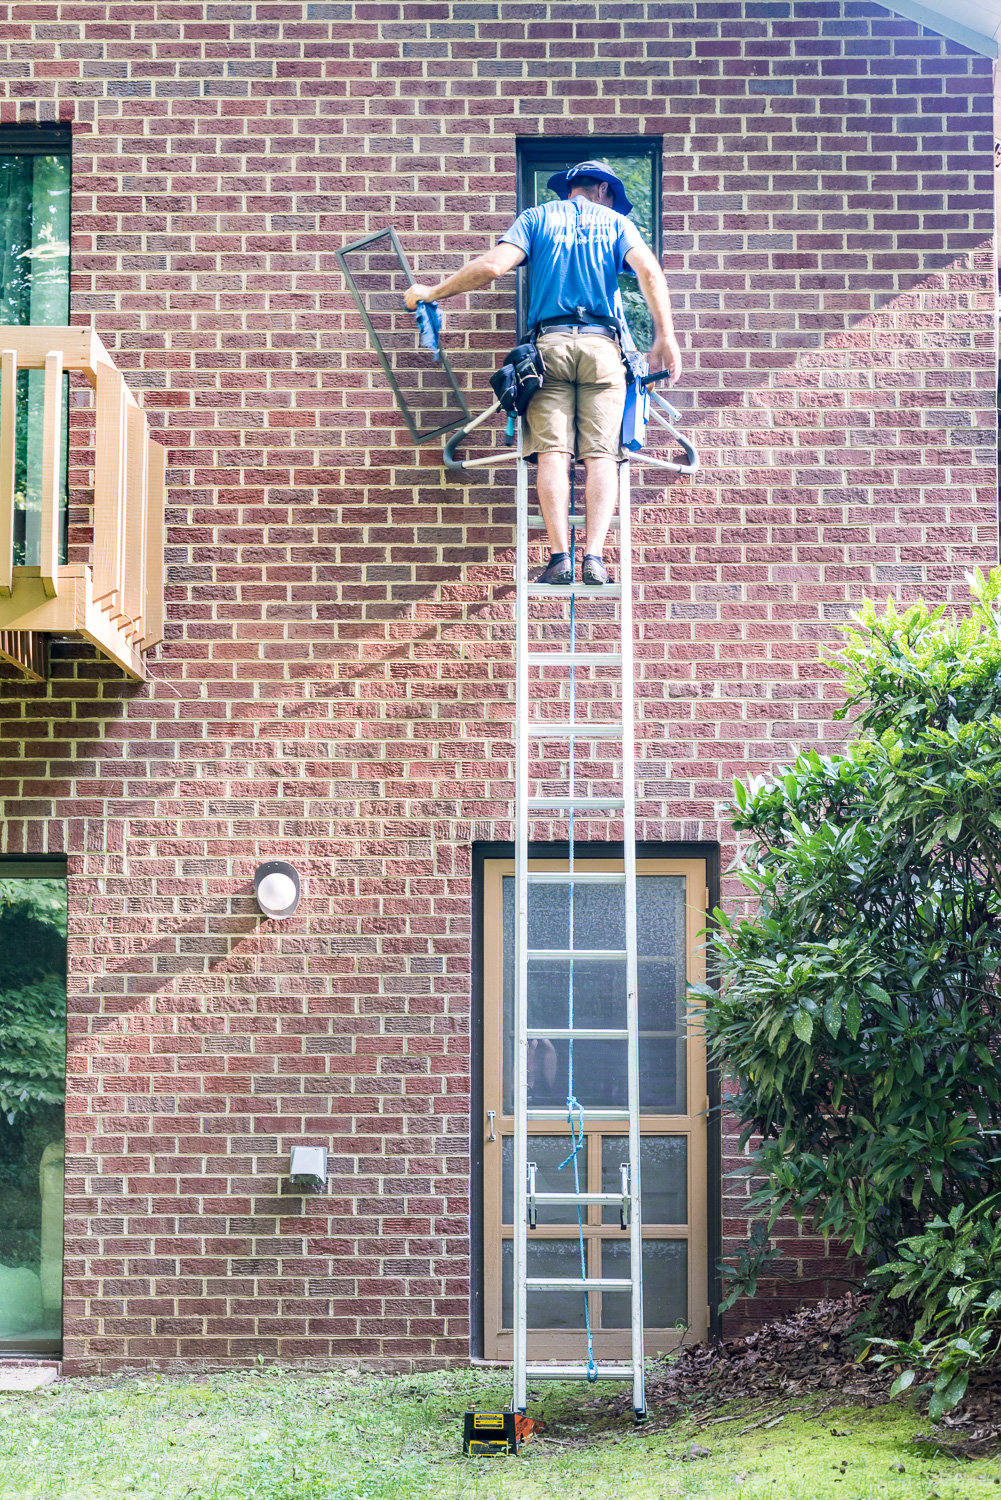 Our ladders can reach all your windows to clean in Richmond, VA.